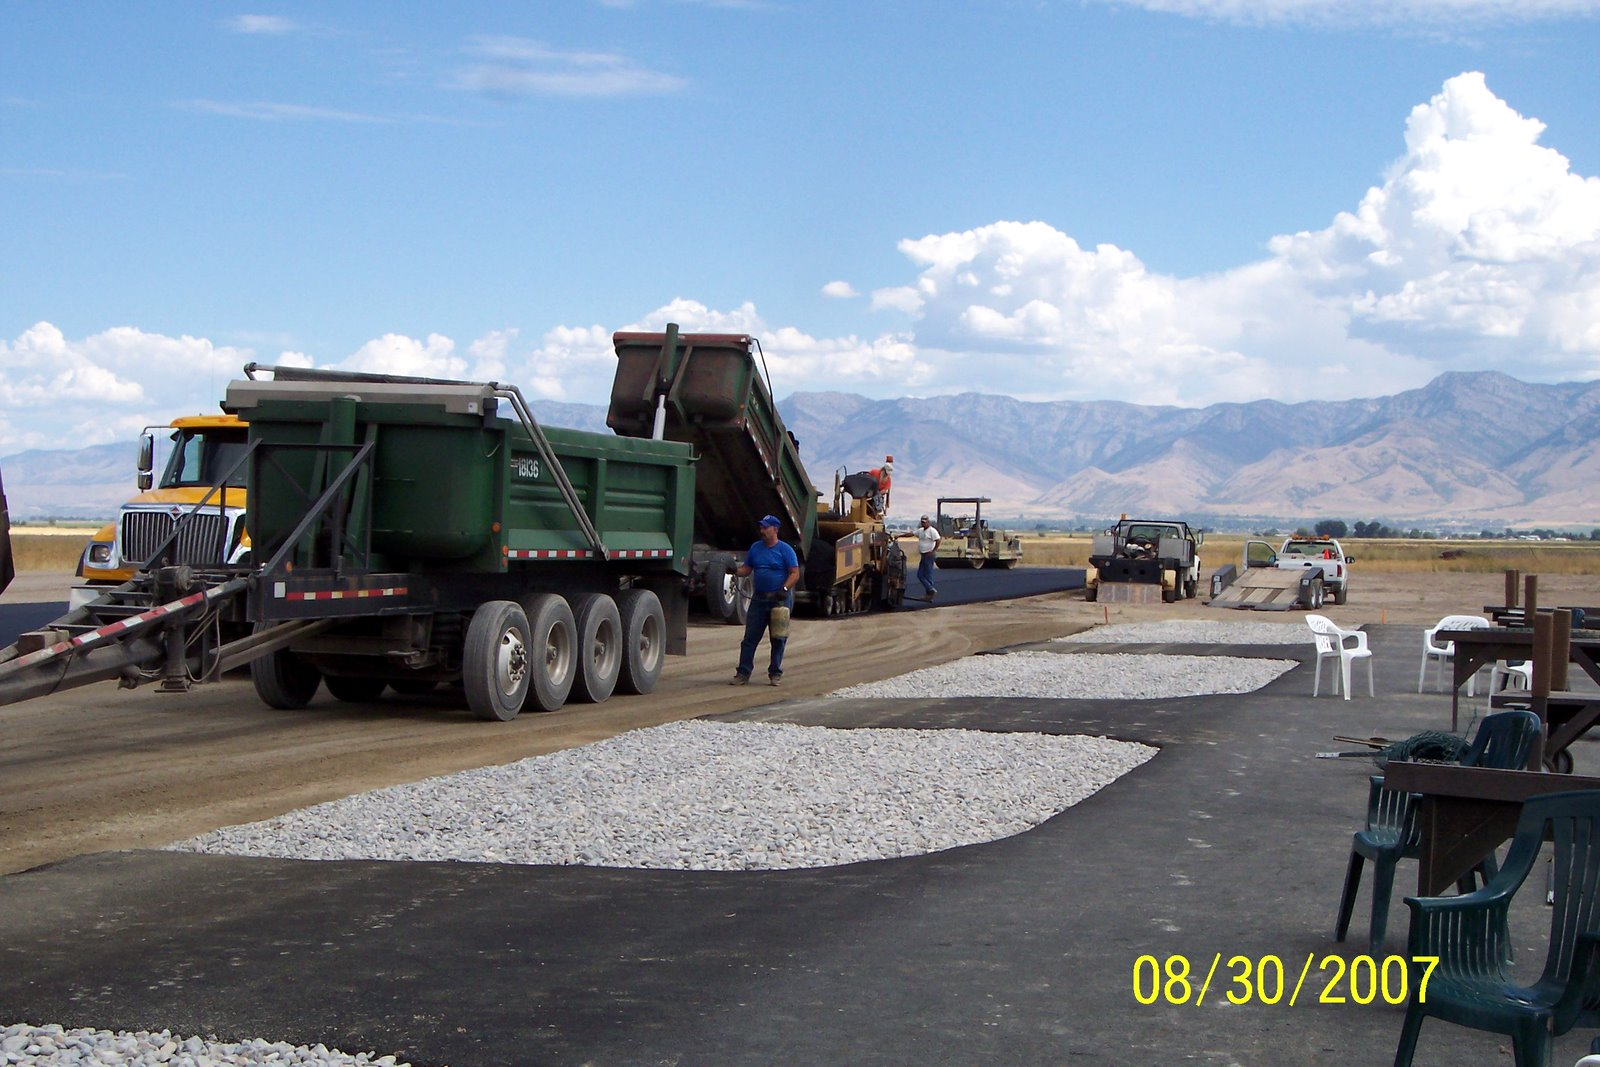 PAVING IS OVER HALF WAY COMPLETED AT THIS POINT.